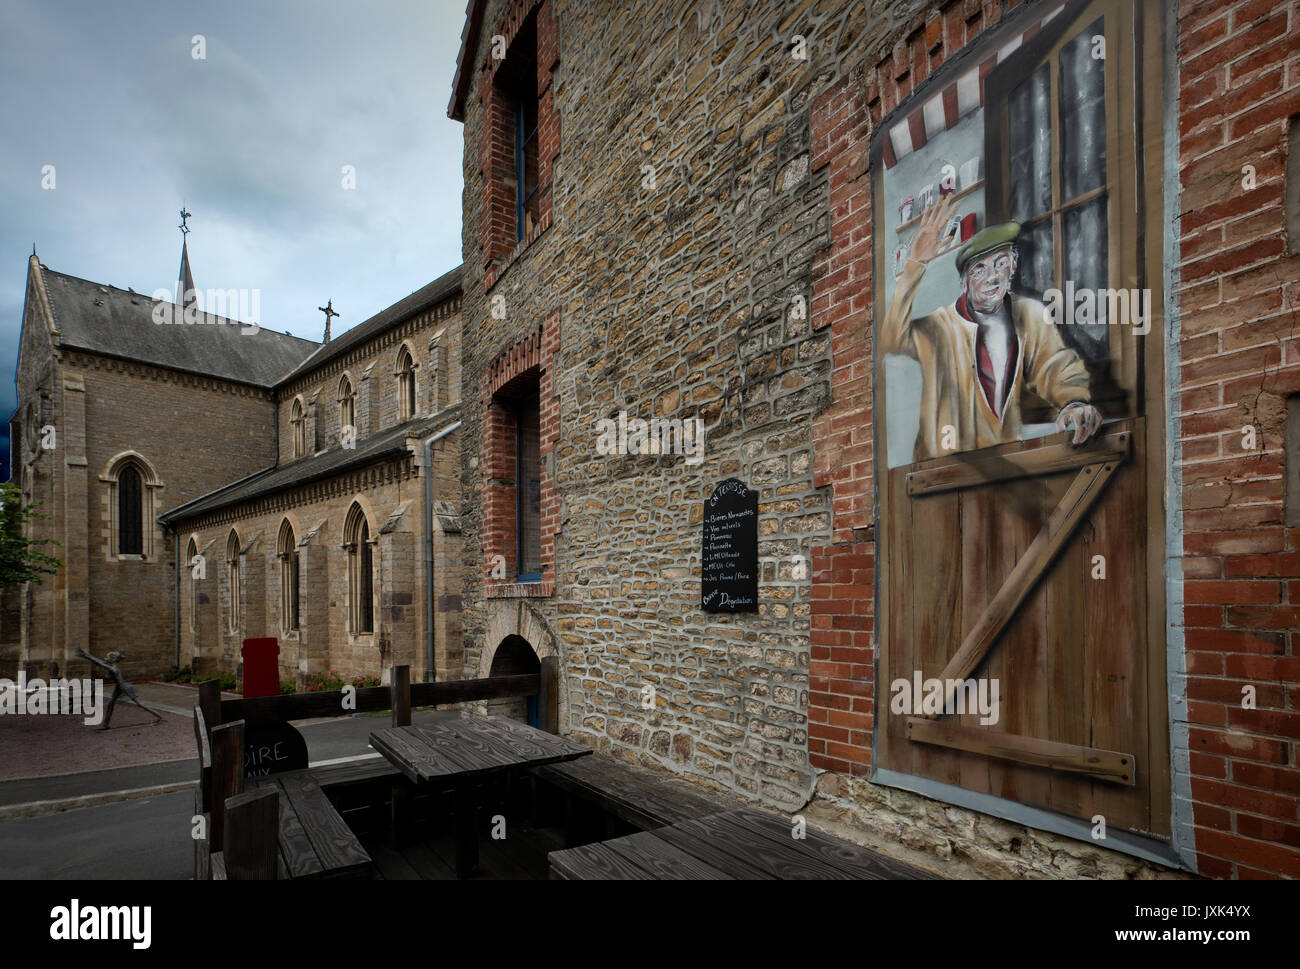 Clecy,Calvados,Normandy,France. August 2017 Clecy a small town in the Suisse Normande (Swiss Normandy ) area of - Stock Image